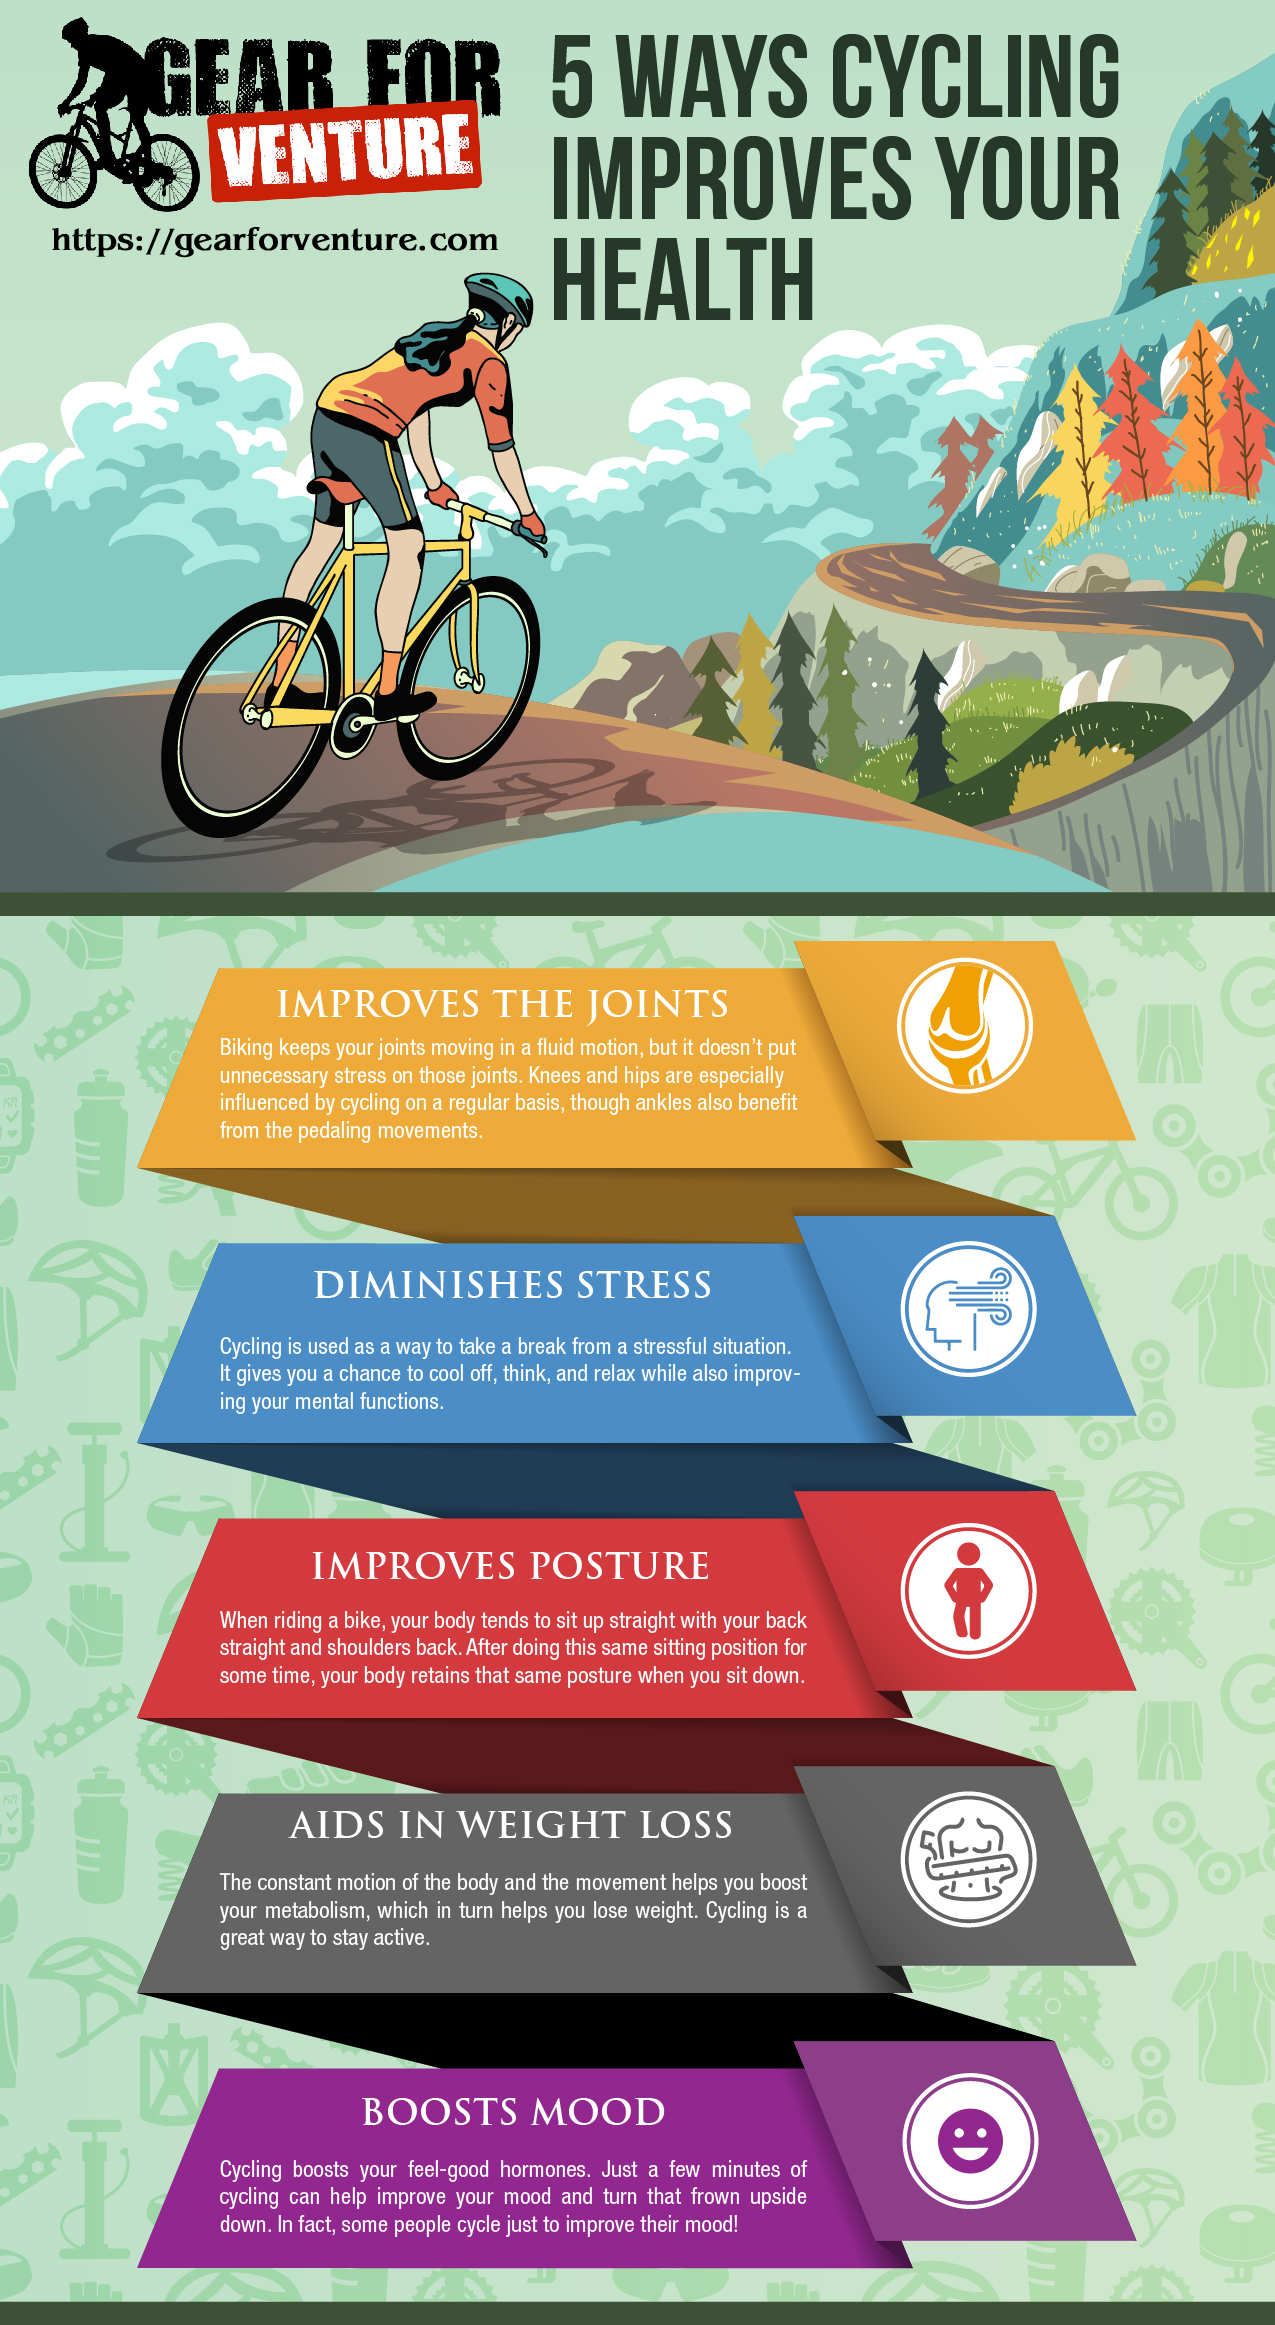 5 Ways Cycling Improves Your Health